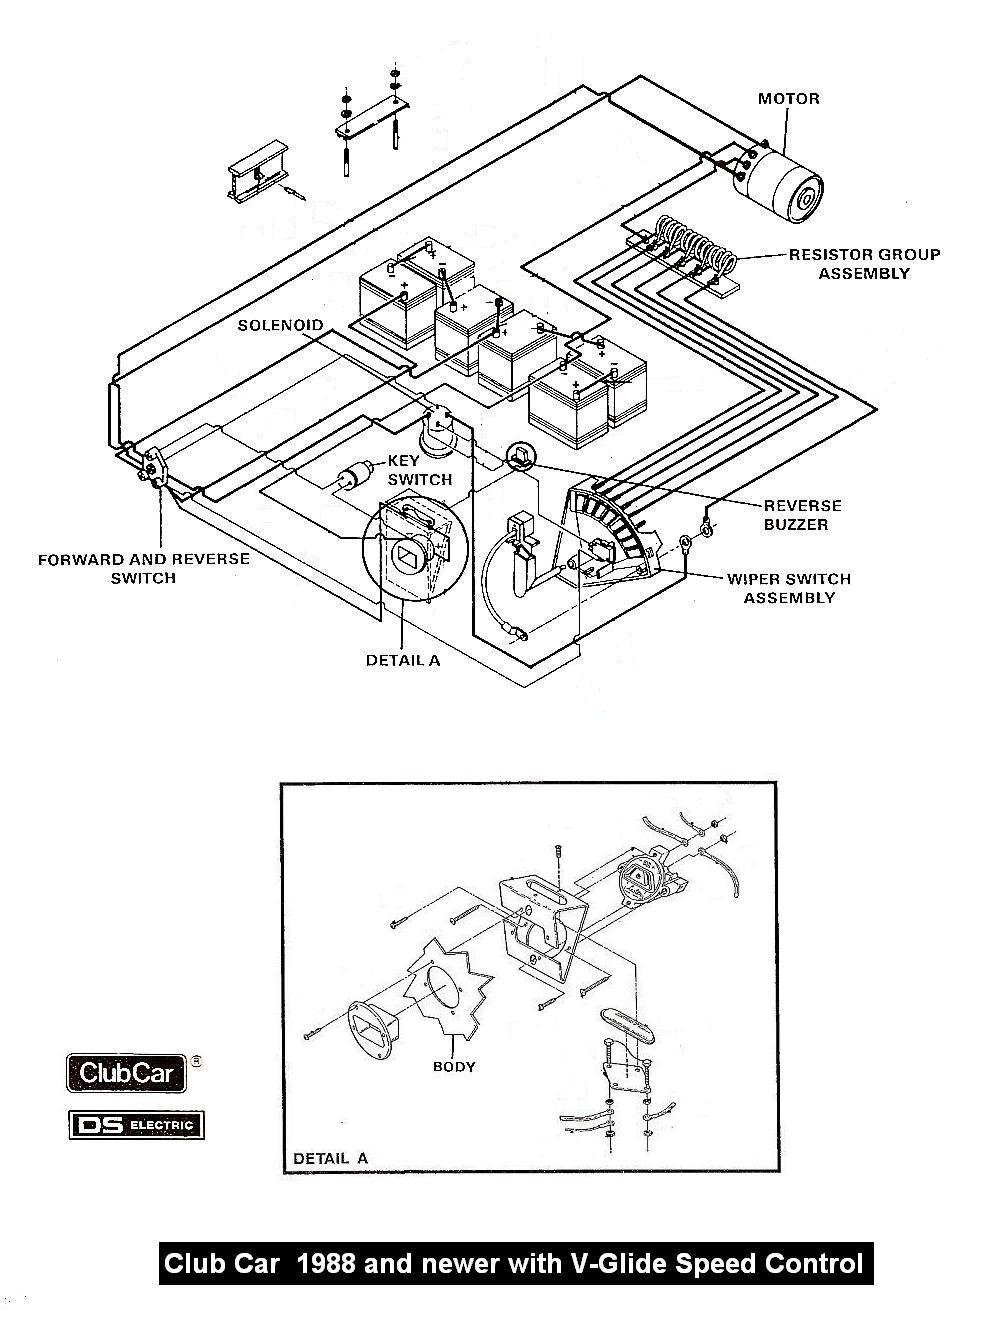 Club Car 36v Wiring Diagram For Volt Meter Trusted Diagrams Battery Voltage Images Gallery